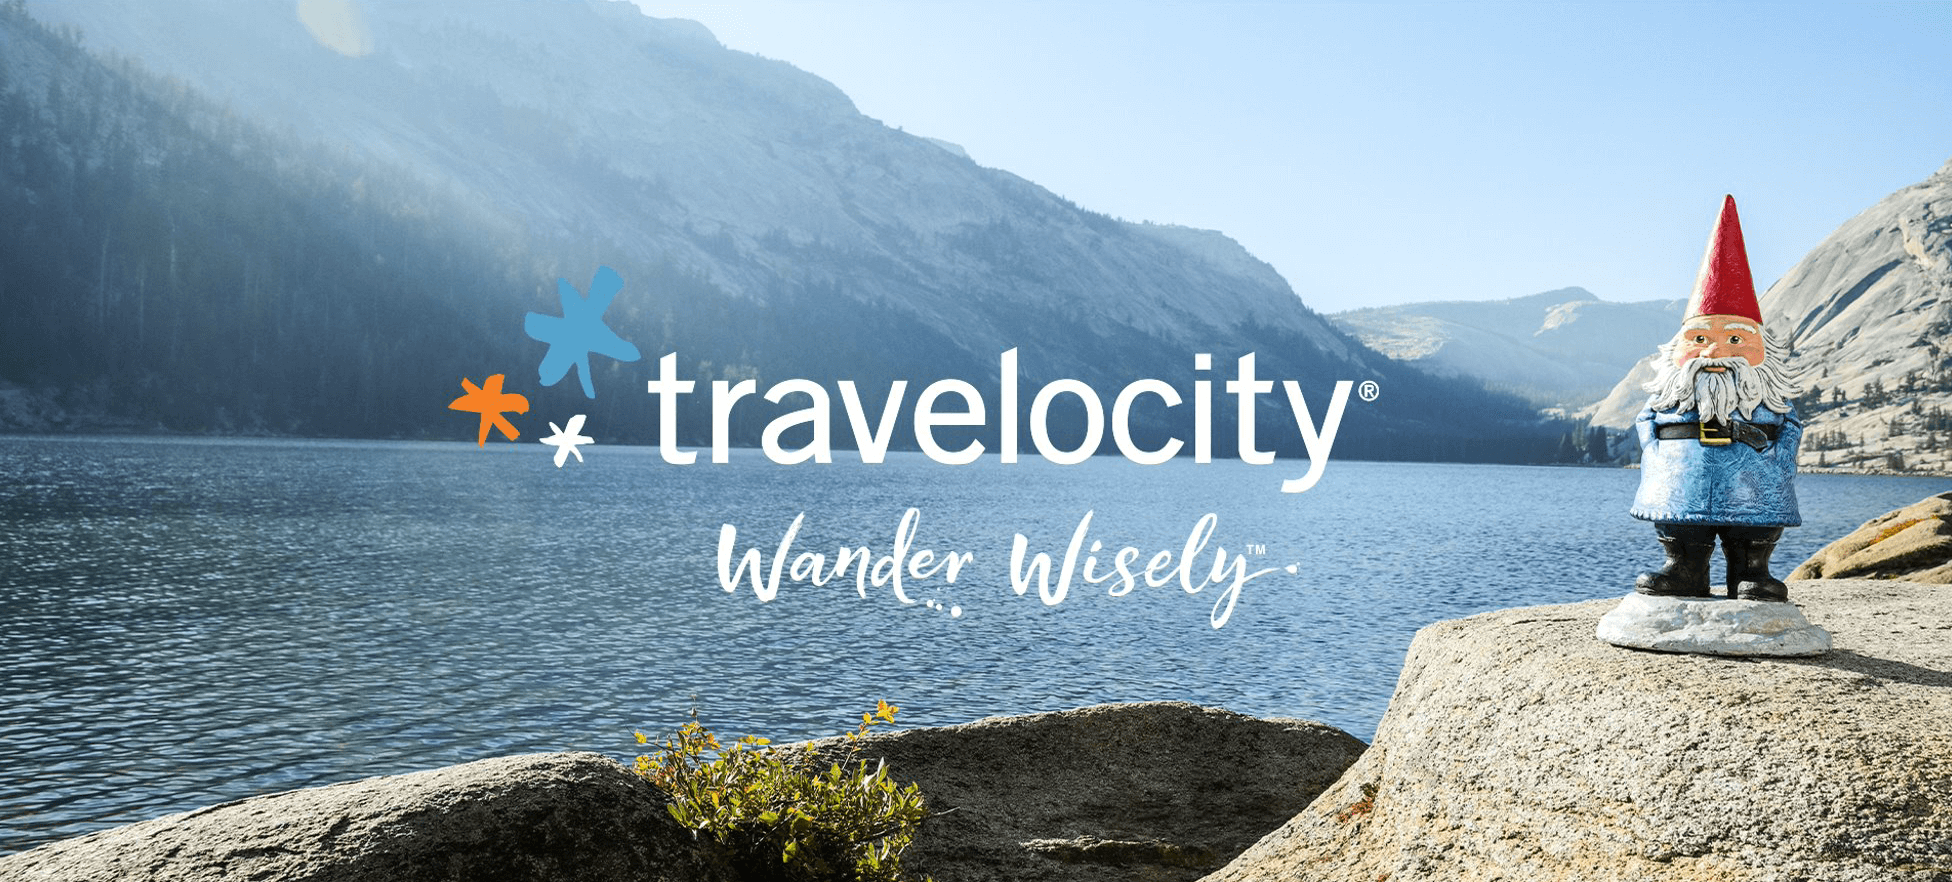 Travelocity is Giving Away $1k for a Family Getaway!